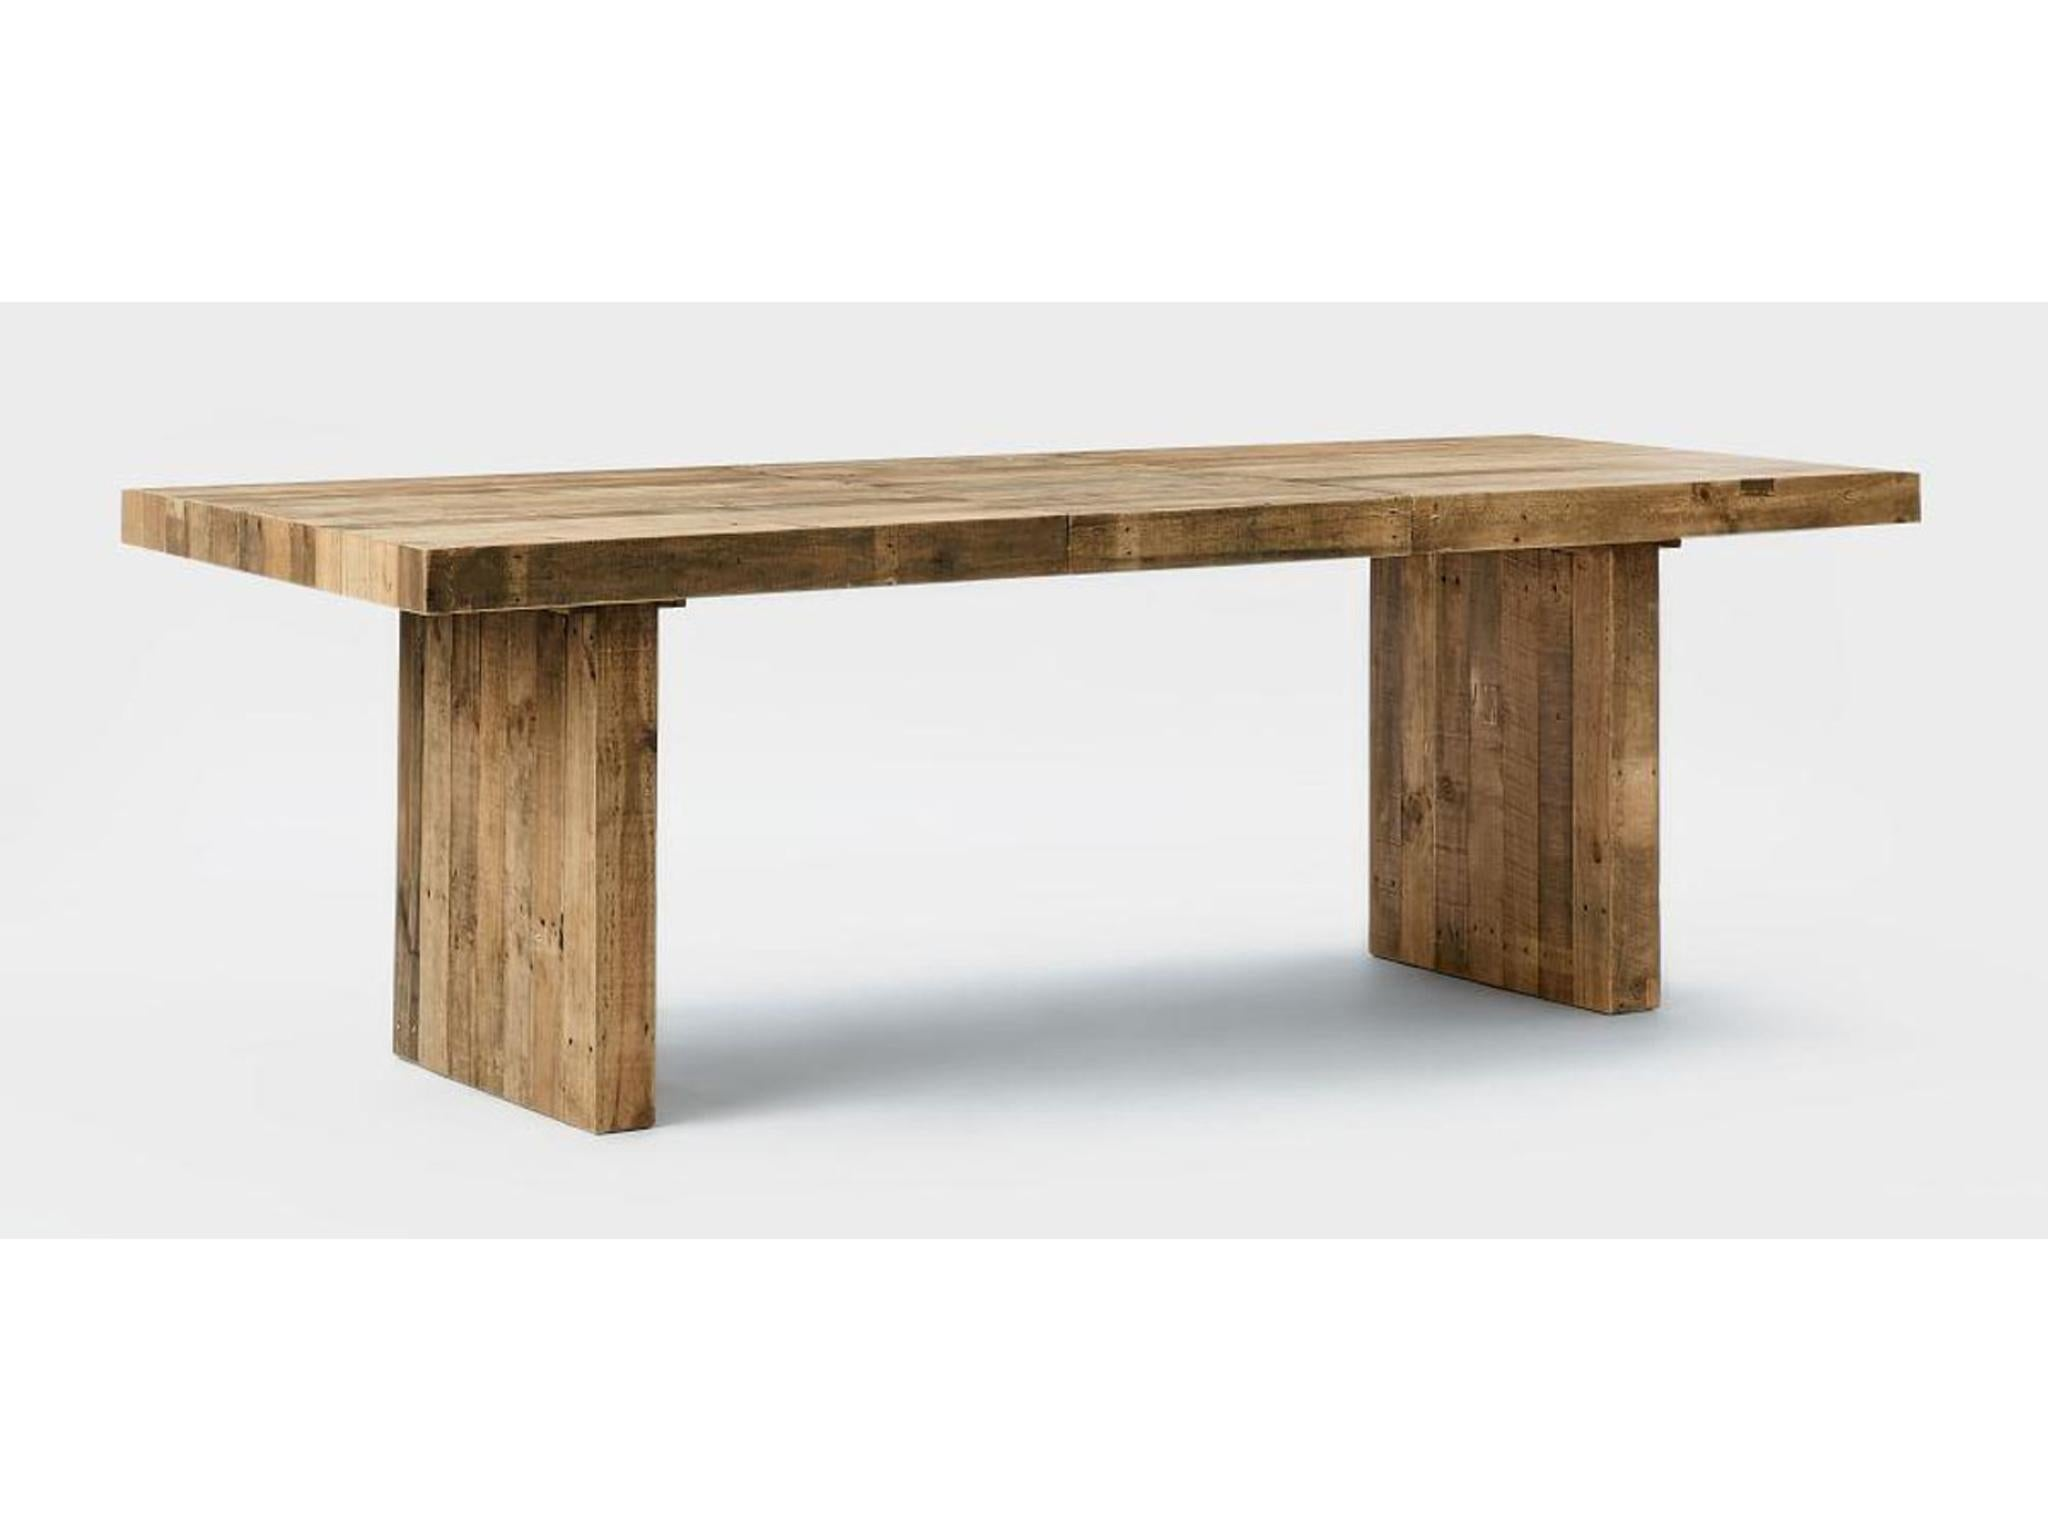 Like a rugged forest picnic bench the emmerson table from west elm has real character thanks to the chunky reclaimed wood that makes it